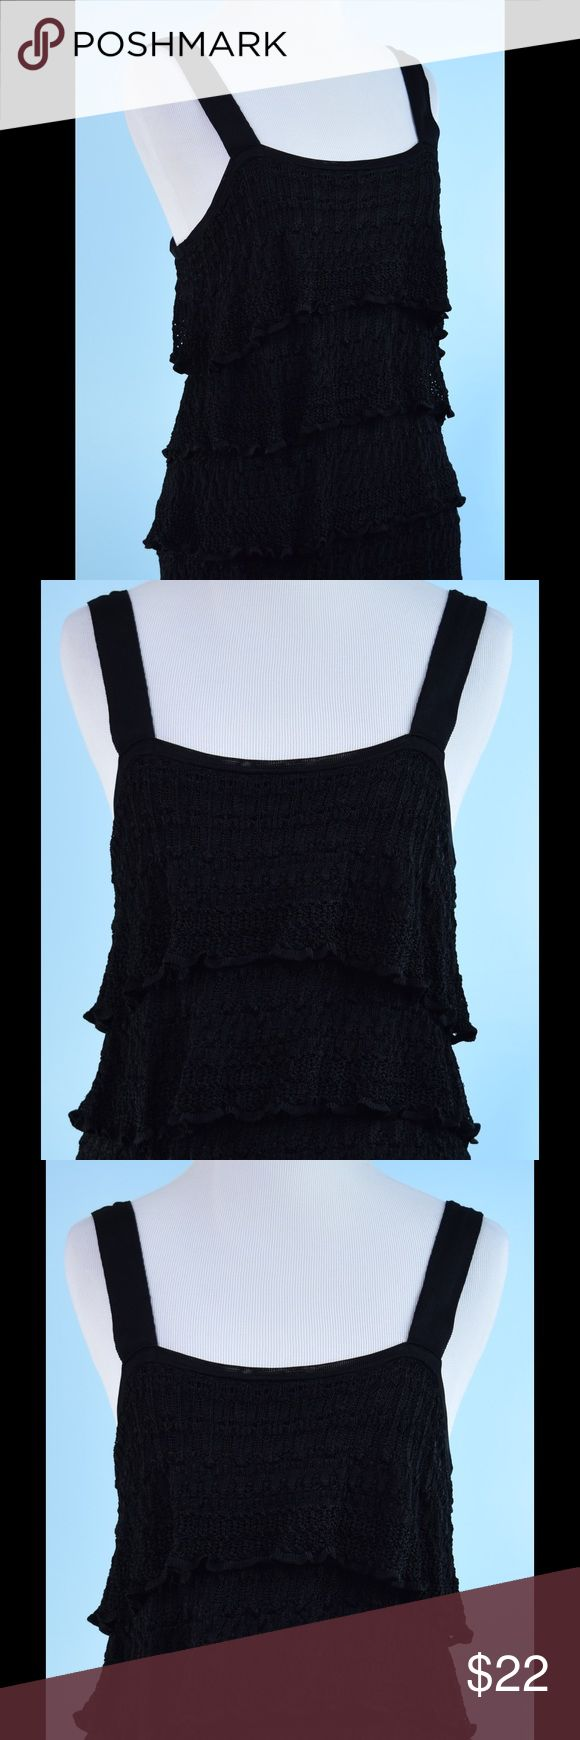 WHIYE HOUSE BLACK MARKET tier top MEDIUM WHIYE HOUSE BLACK MARKET black tier tunic top MEDIUM, length 26 inches, bust 32 inches, 100% Rayon - never worn White House Black Market Tops